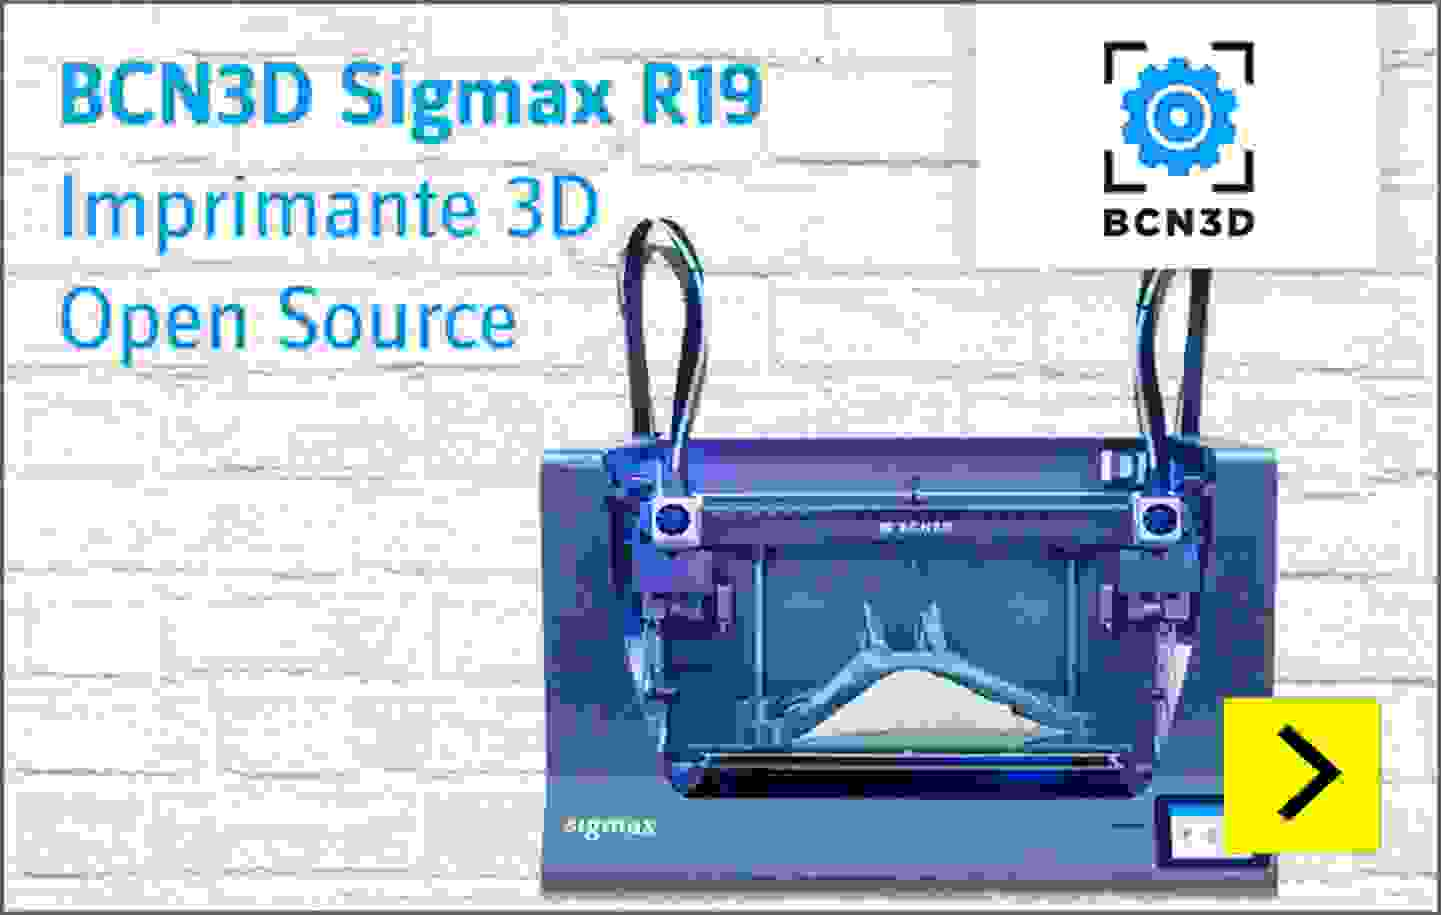 BCN3D Sigmax R19 - Imprimante 3D Open Source